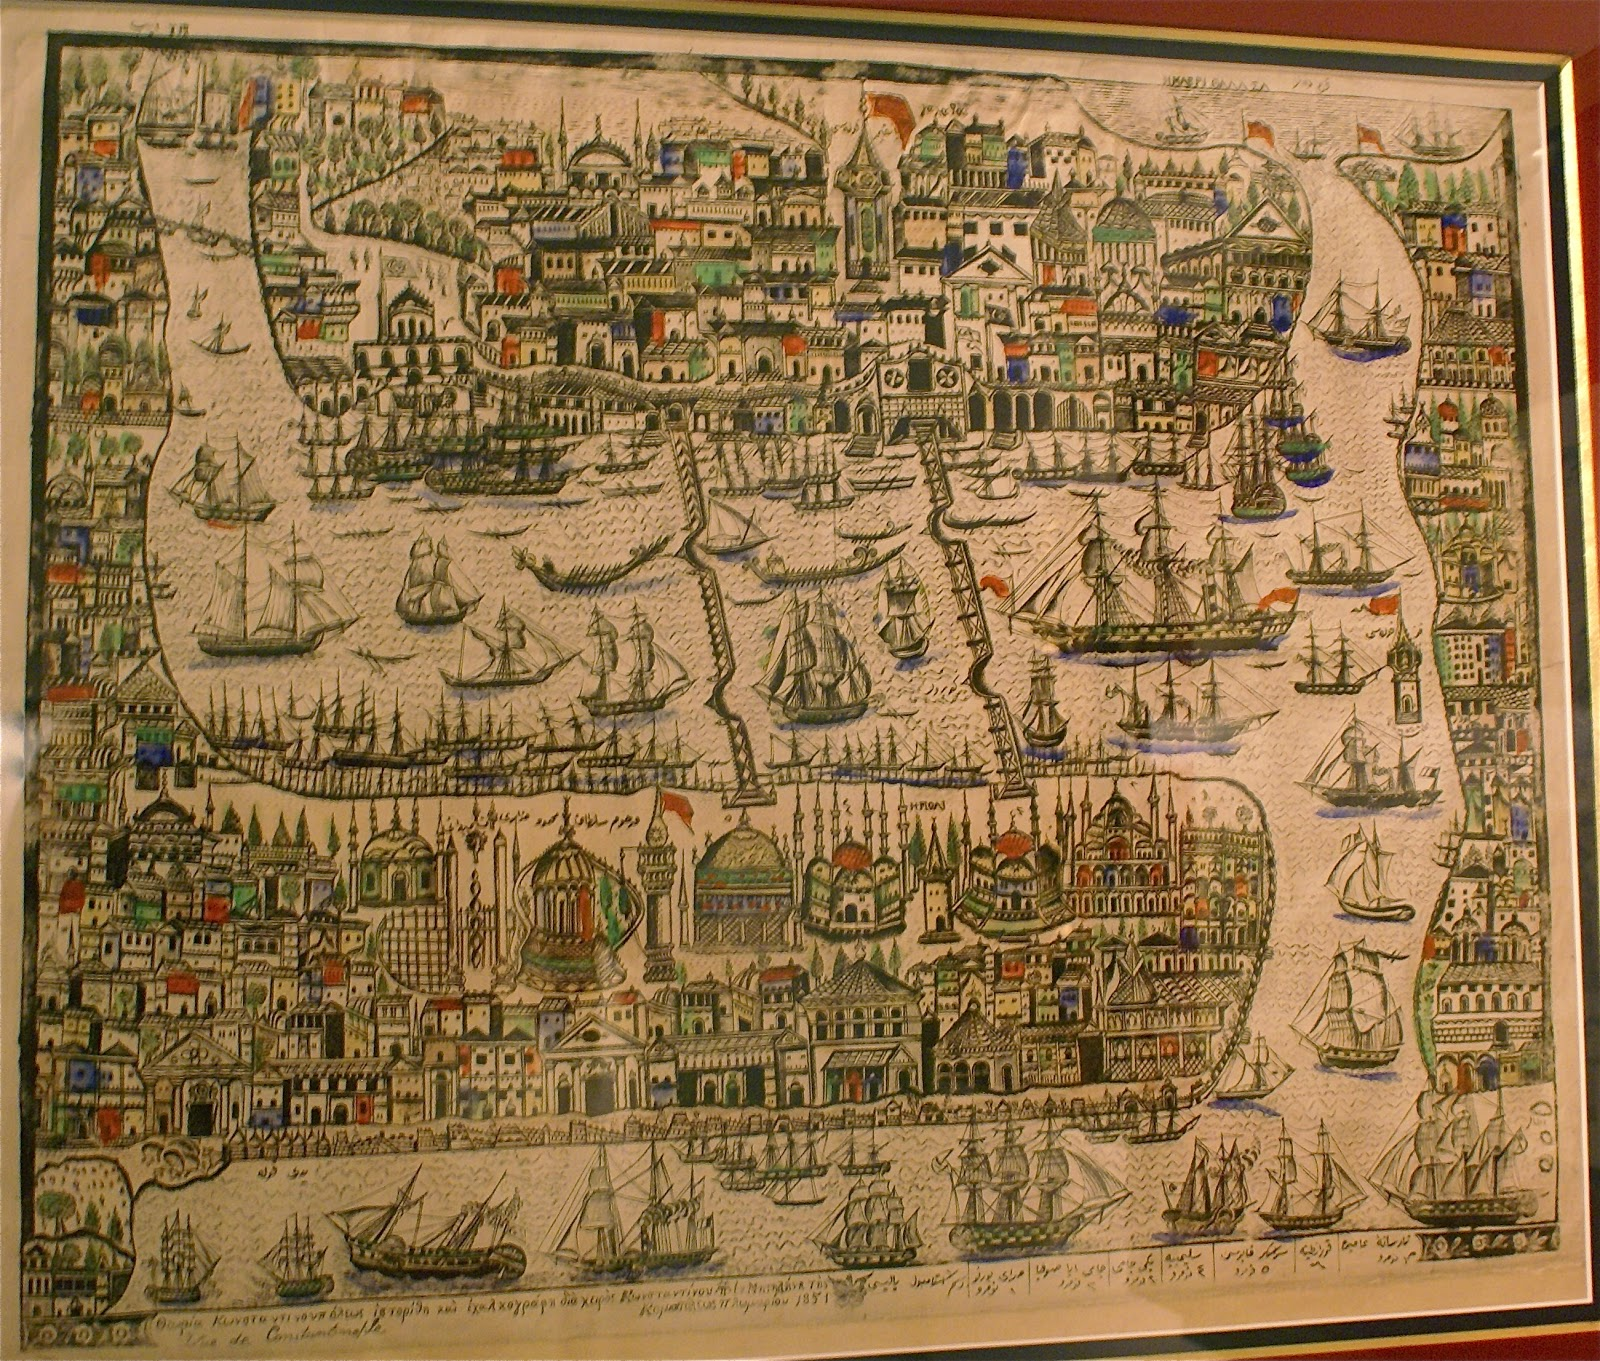 The White Slaves of Barbary North Africa and the Ottoman Empire